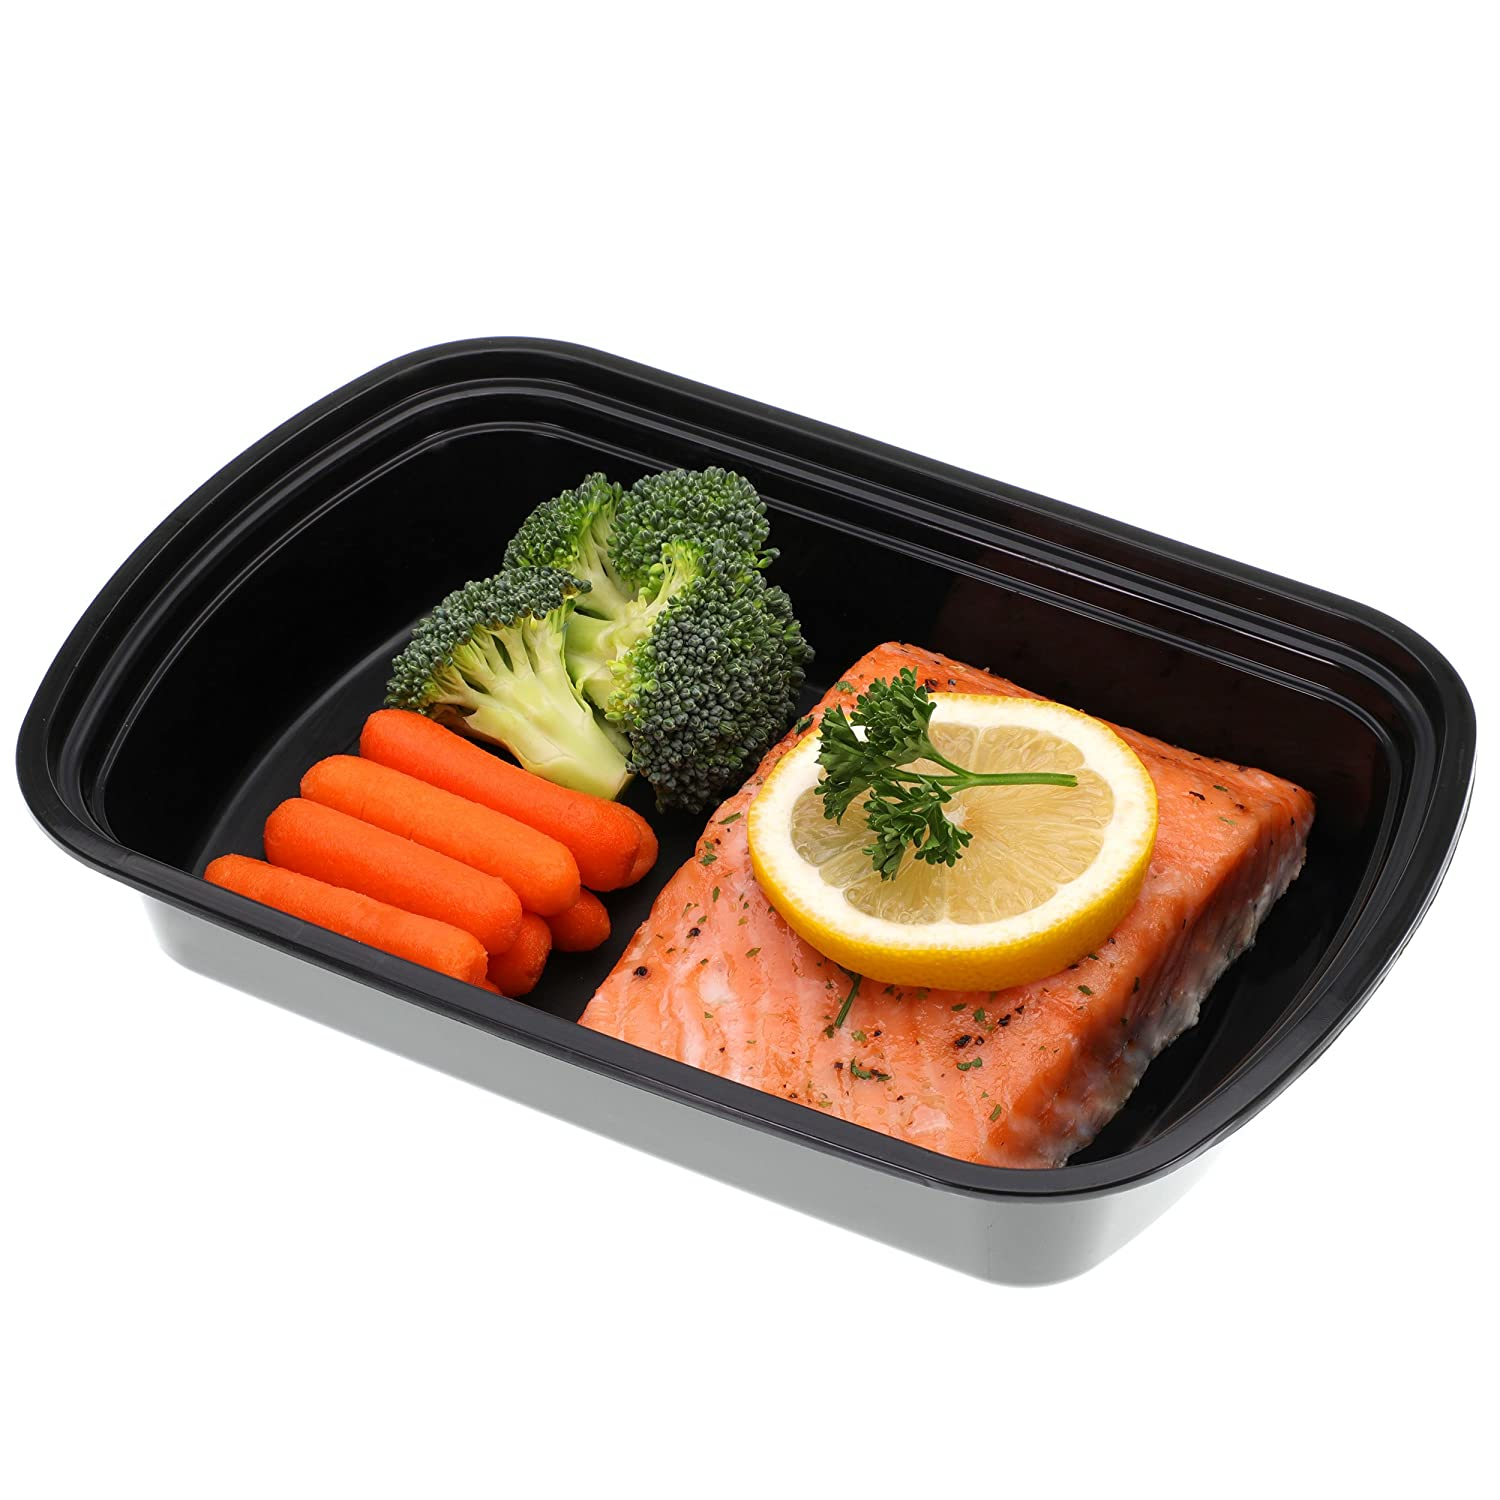 Freshware Meal Prep Containers 150 Pack 1 Compartment with Lids Food Storage Bento Box  BPA Free